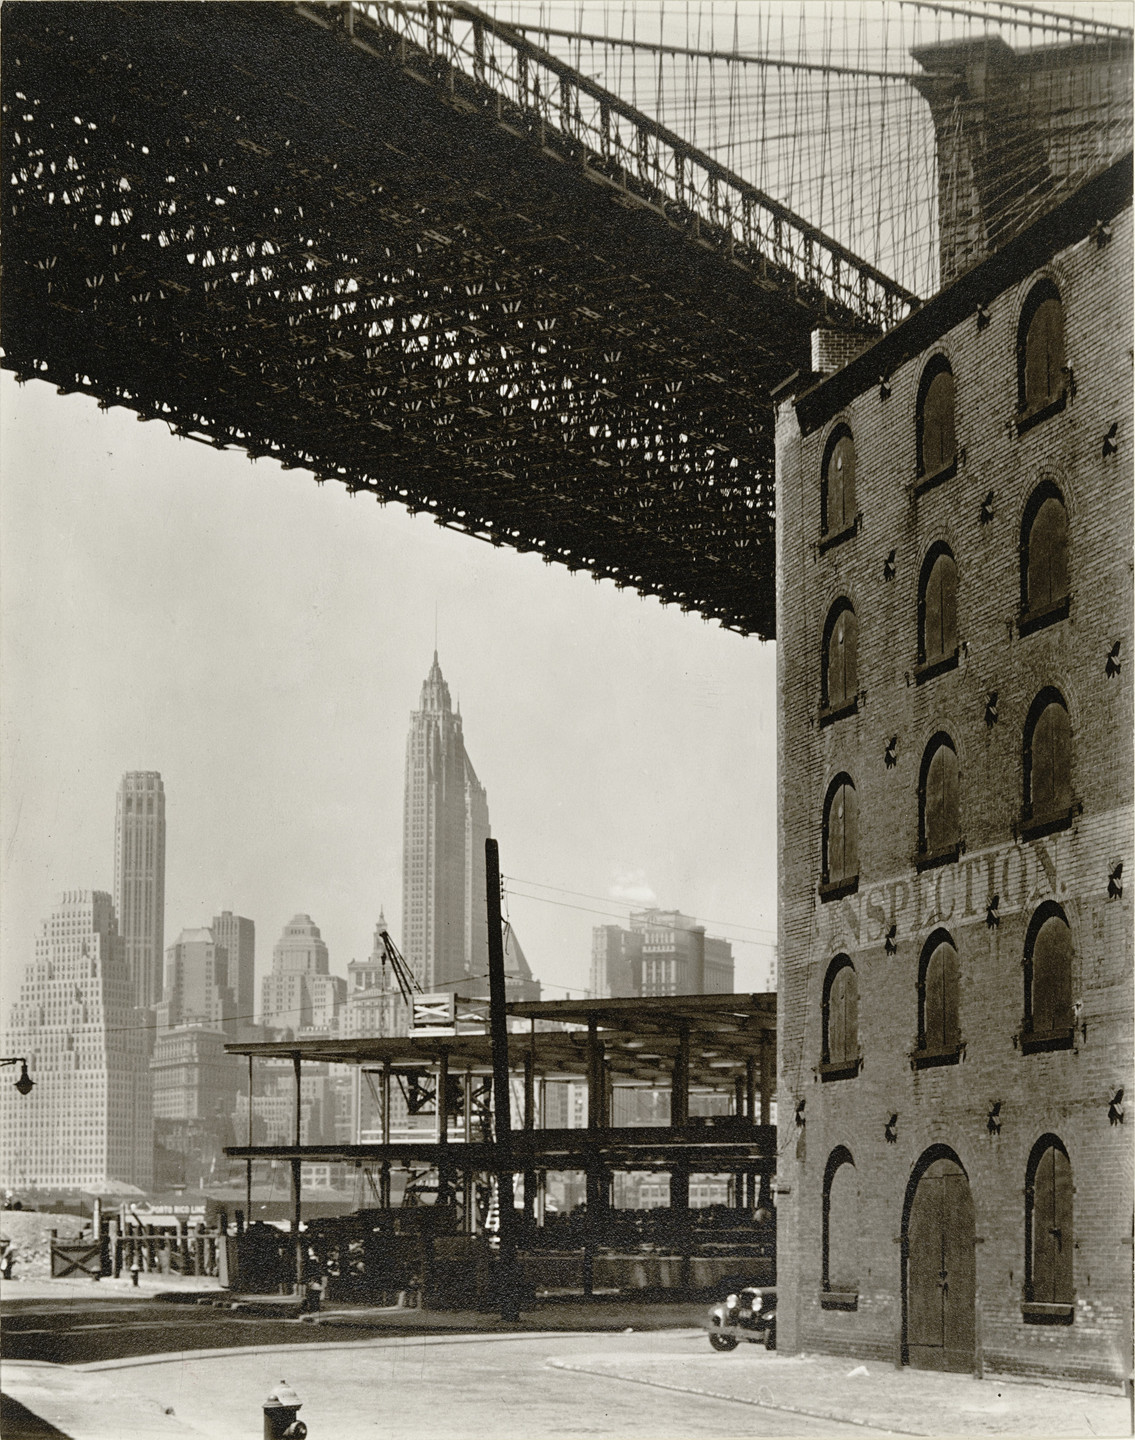 Berenice Abbott. Brooklyn Bridge, Water and New Dock Streets, Brooklyn. May 22, 1936